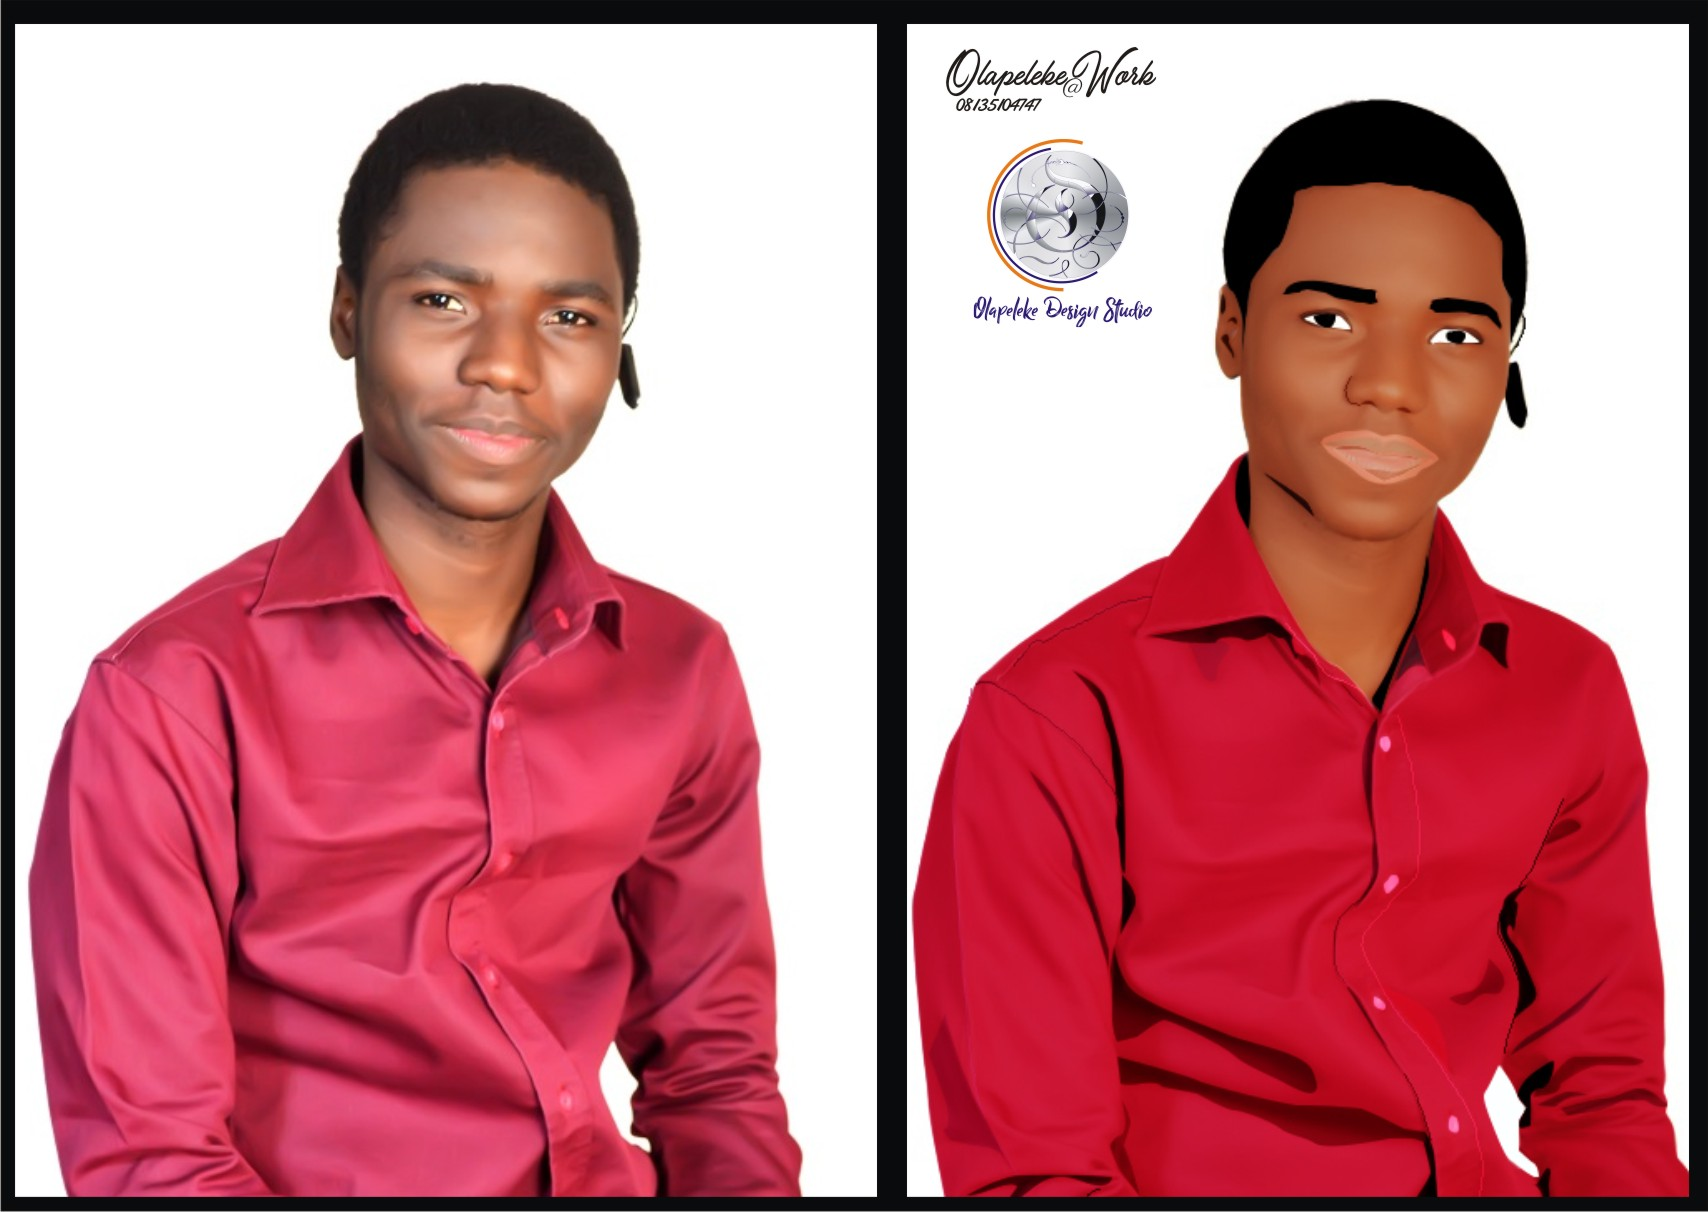 CARTOONIZE & BEAUTIFY YOUR PICTURE